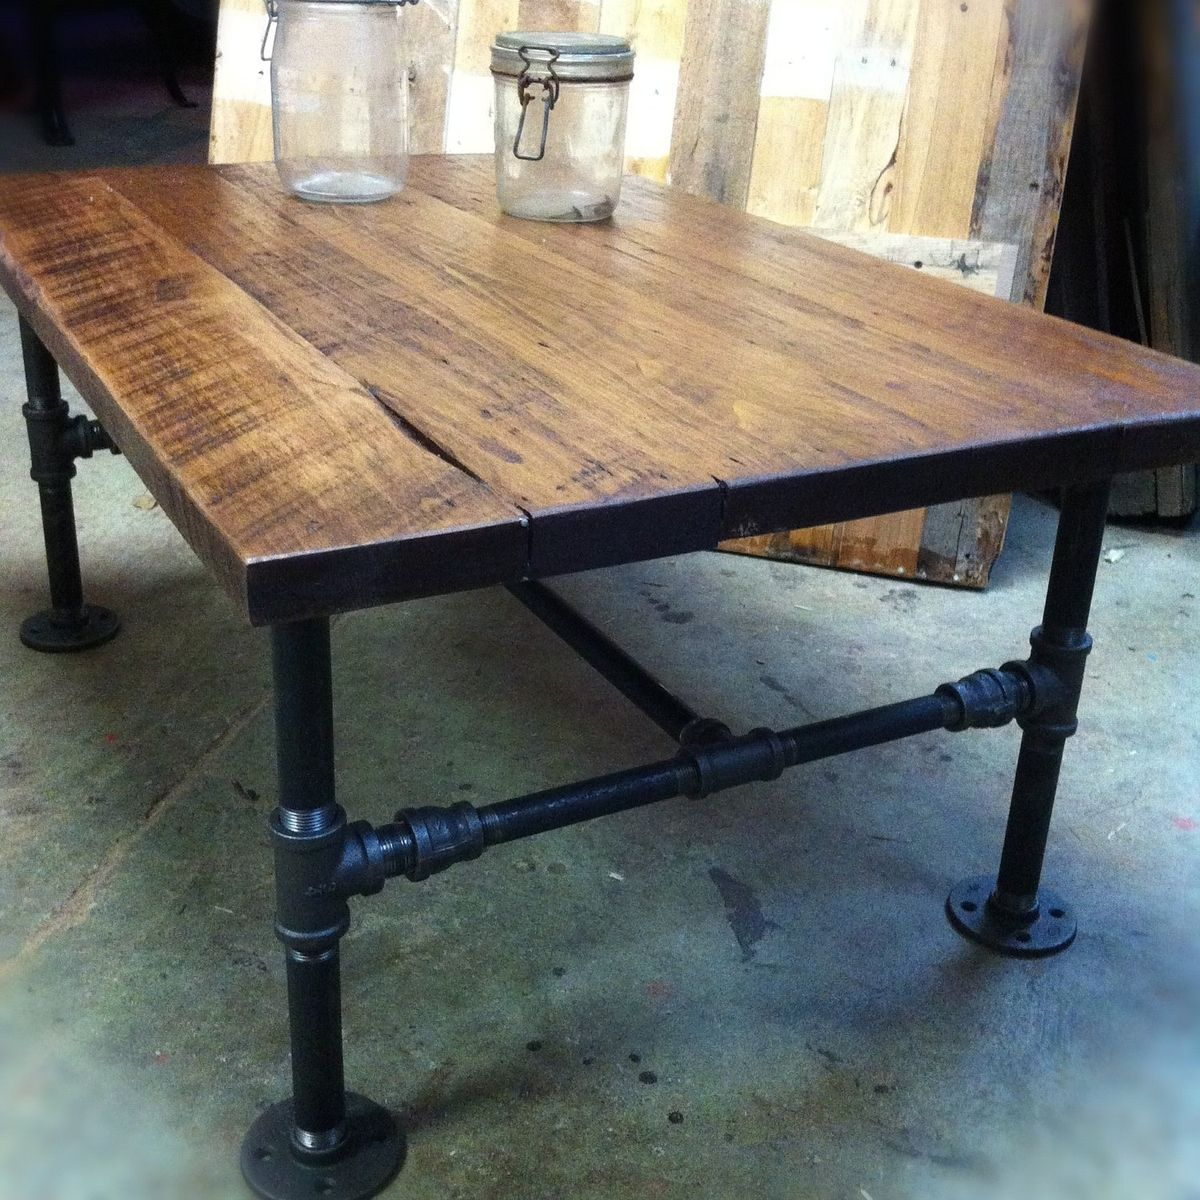 Handmade Reclaimed Wood Coffee Table: Custom Made Industrial Cast Iron Pipe Coffee Table By J&S